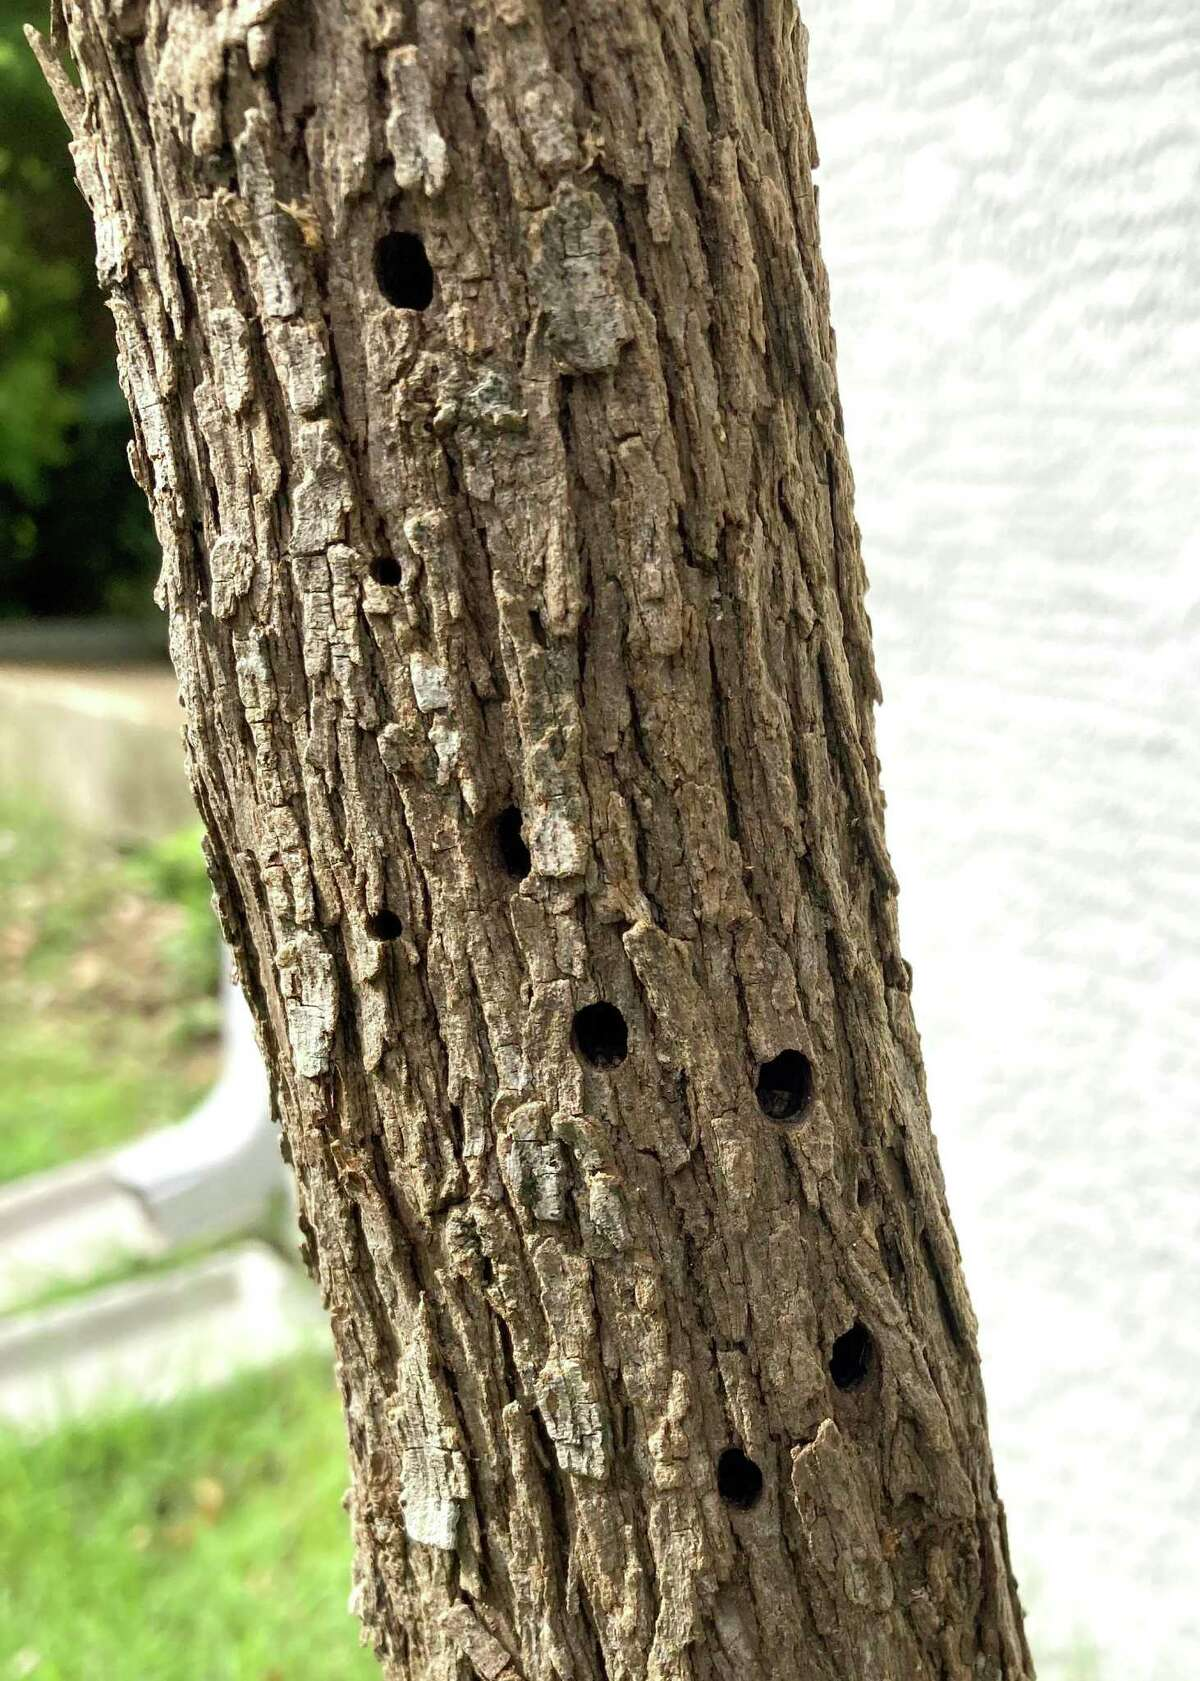 The type of borer causing the damage to this Texas mountain laurel is a mystery.